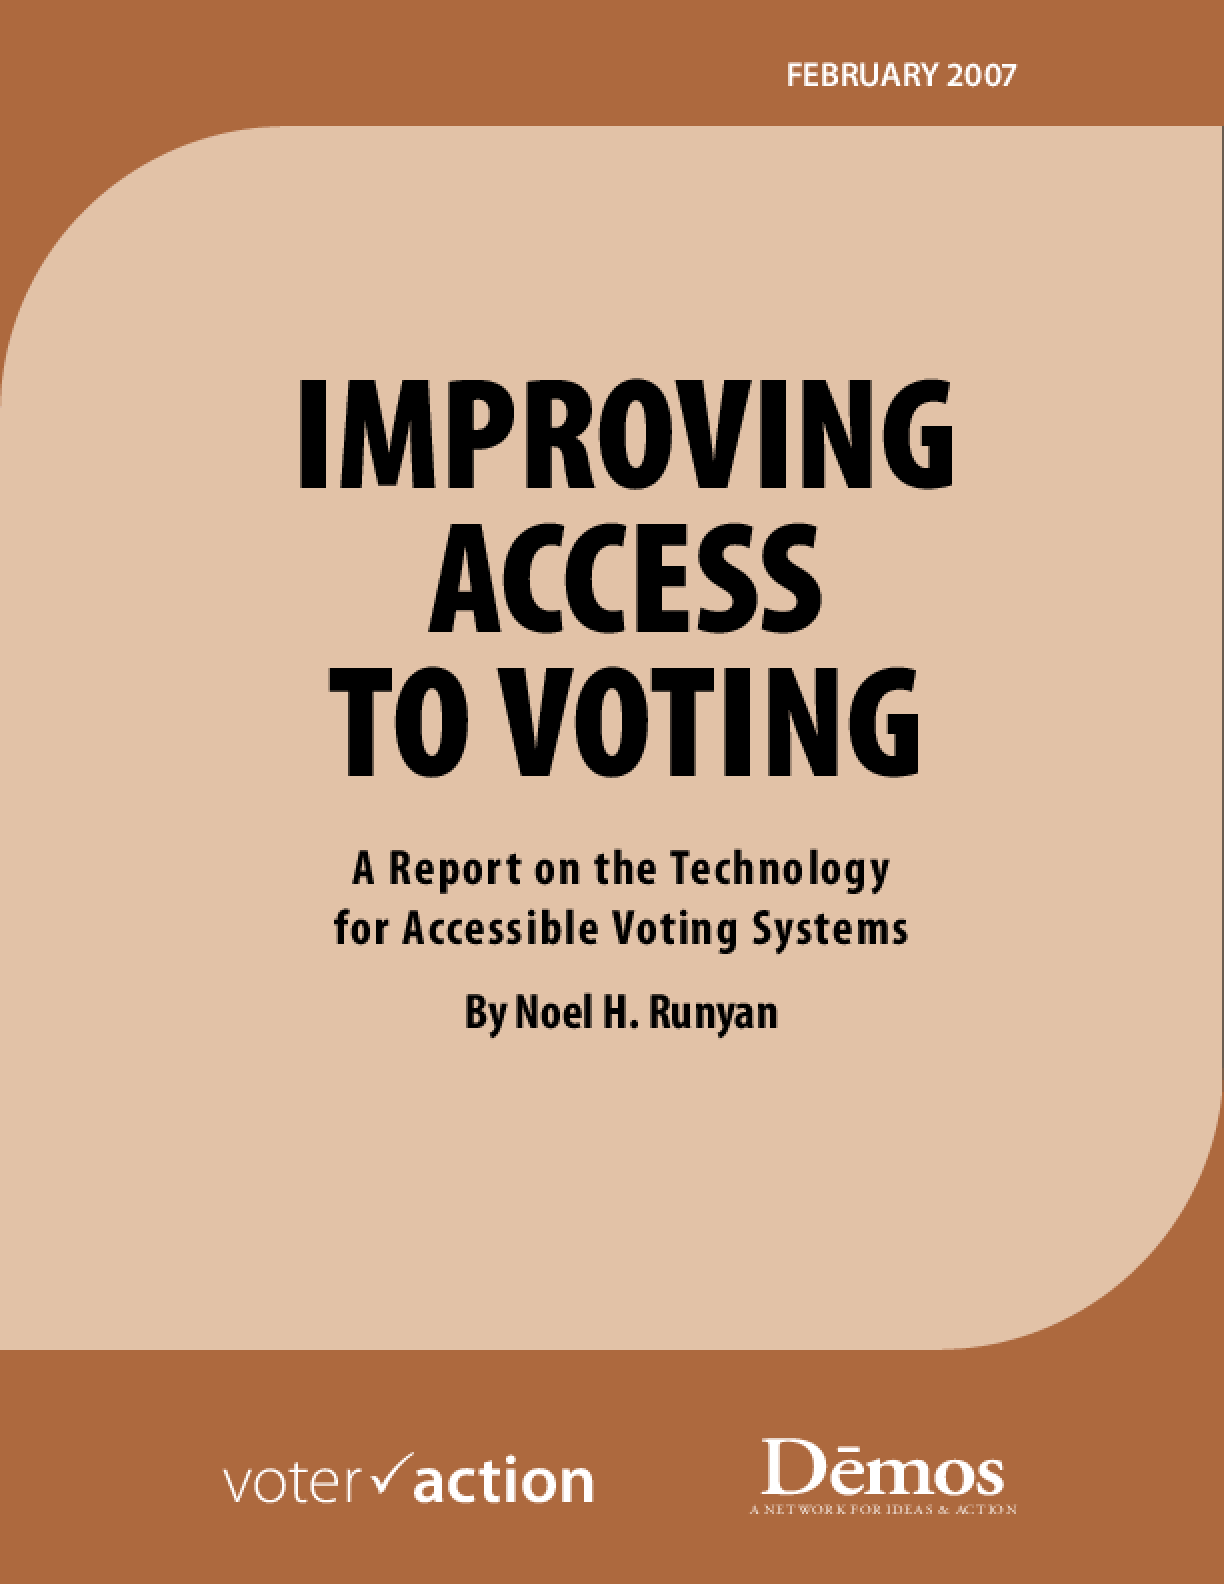 Improving Access to Voting: A Report on the Technology for Accessible Voting Systems